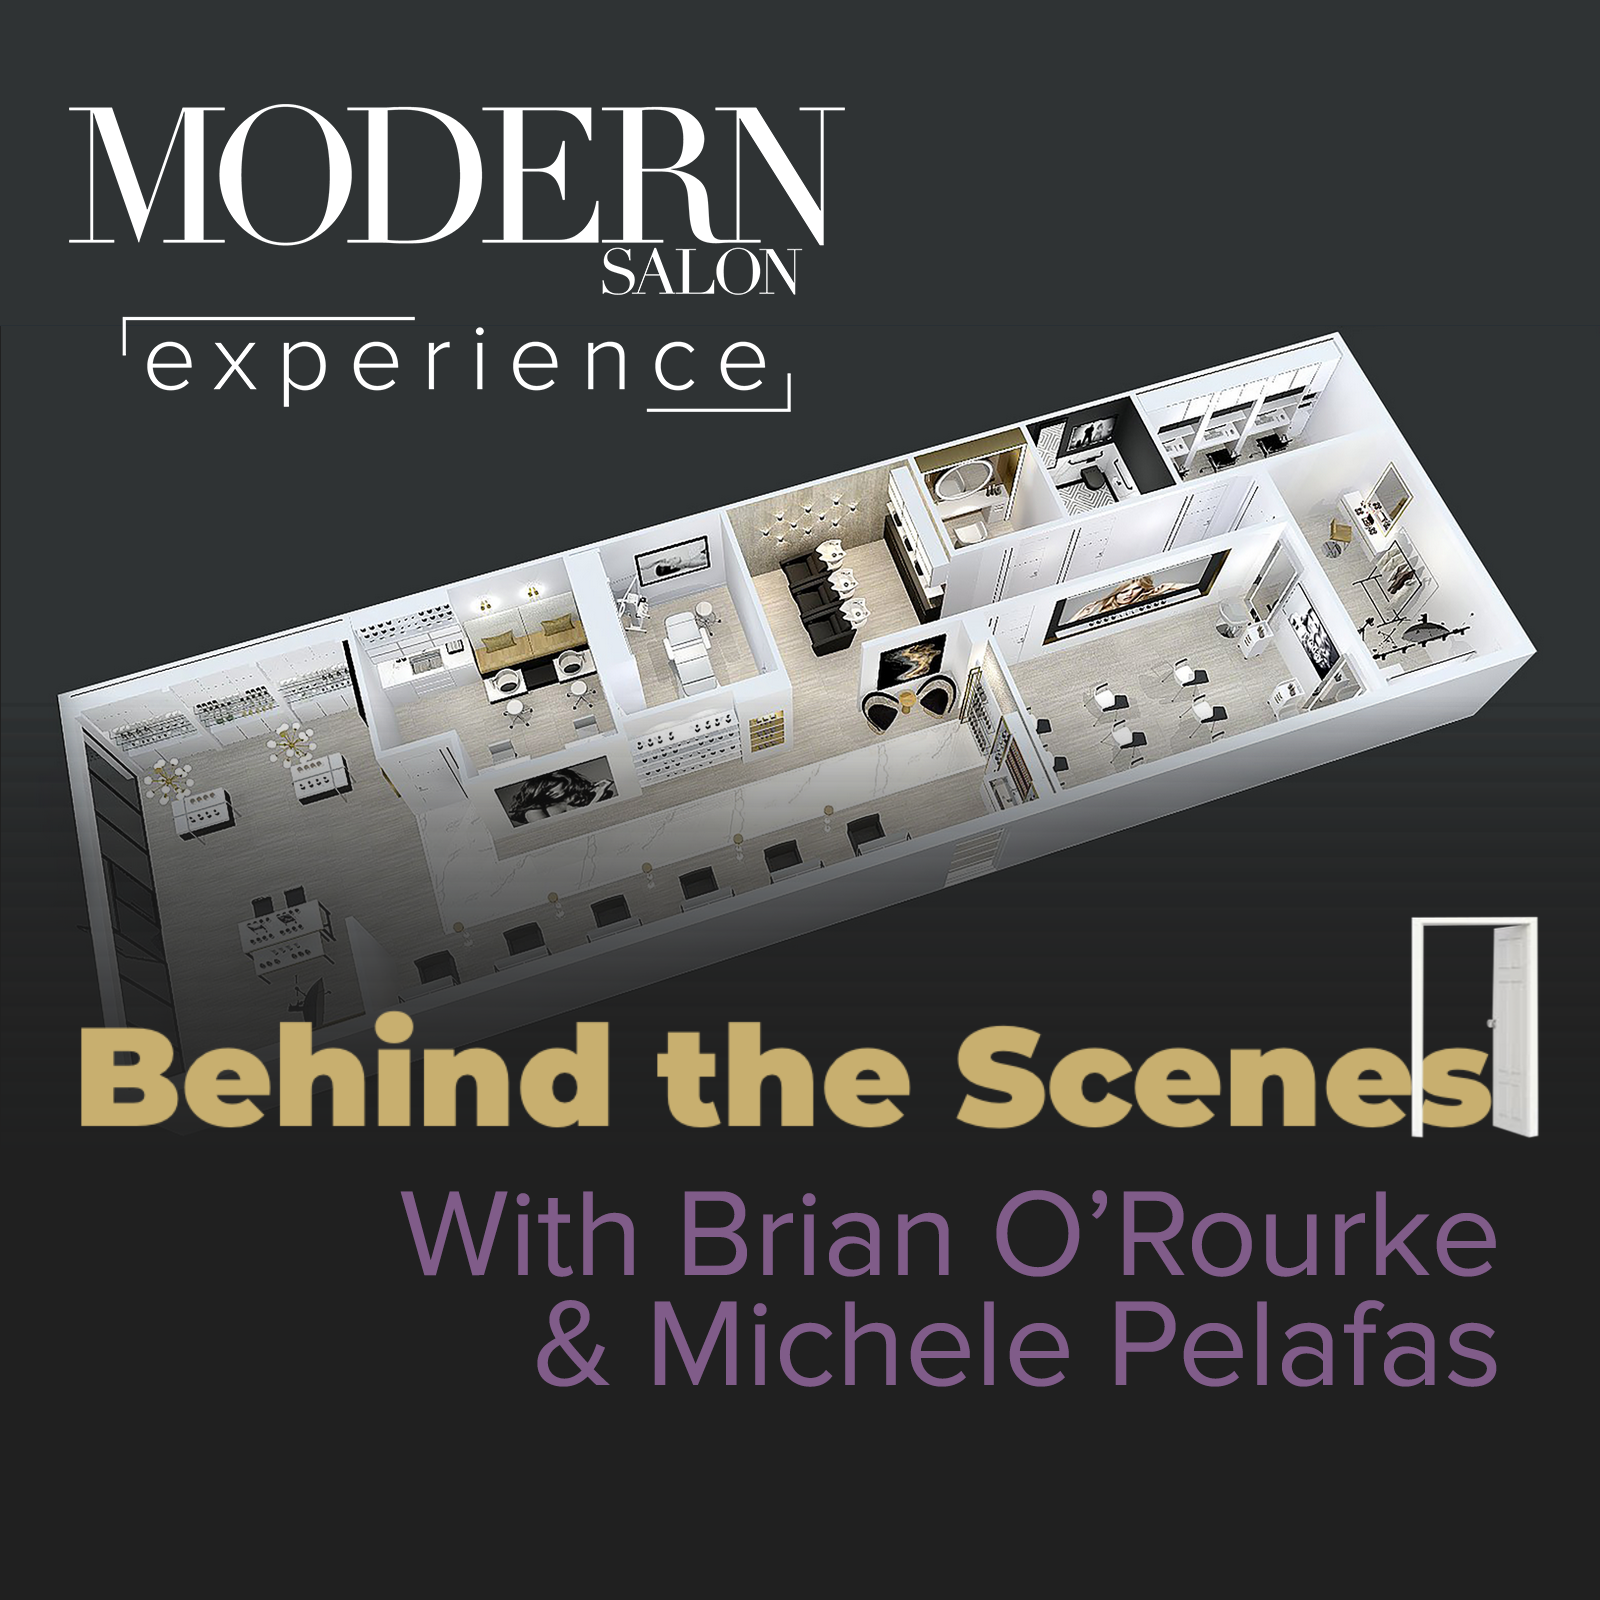 Modern Salon Experience - Behind the Scenes